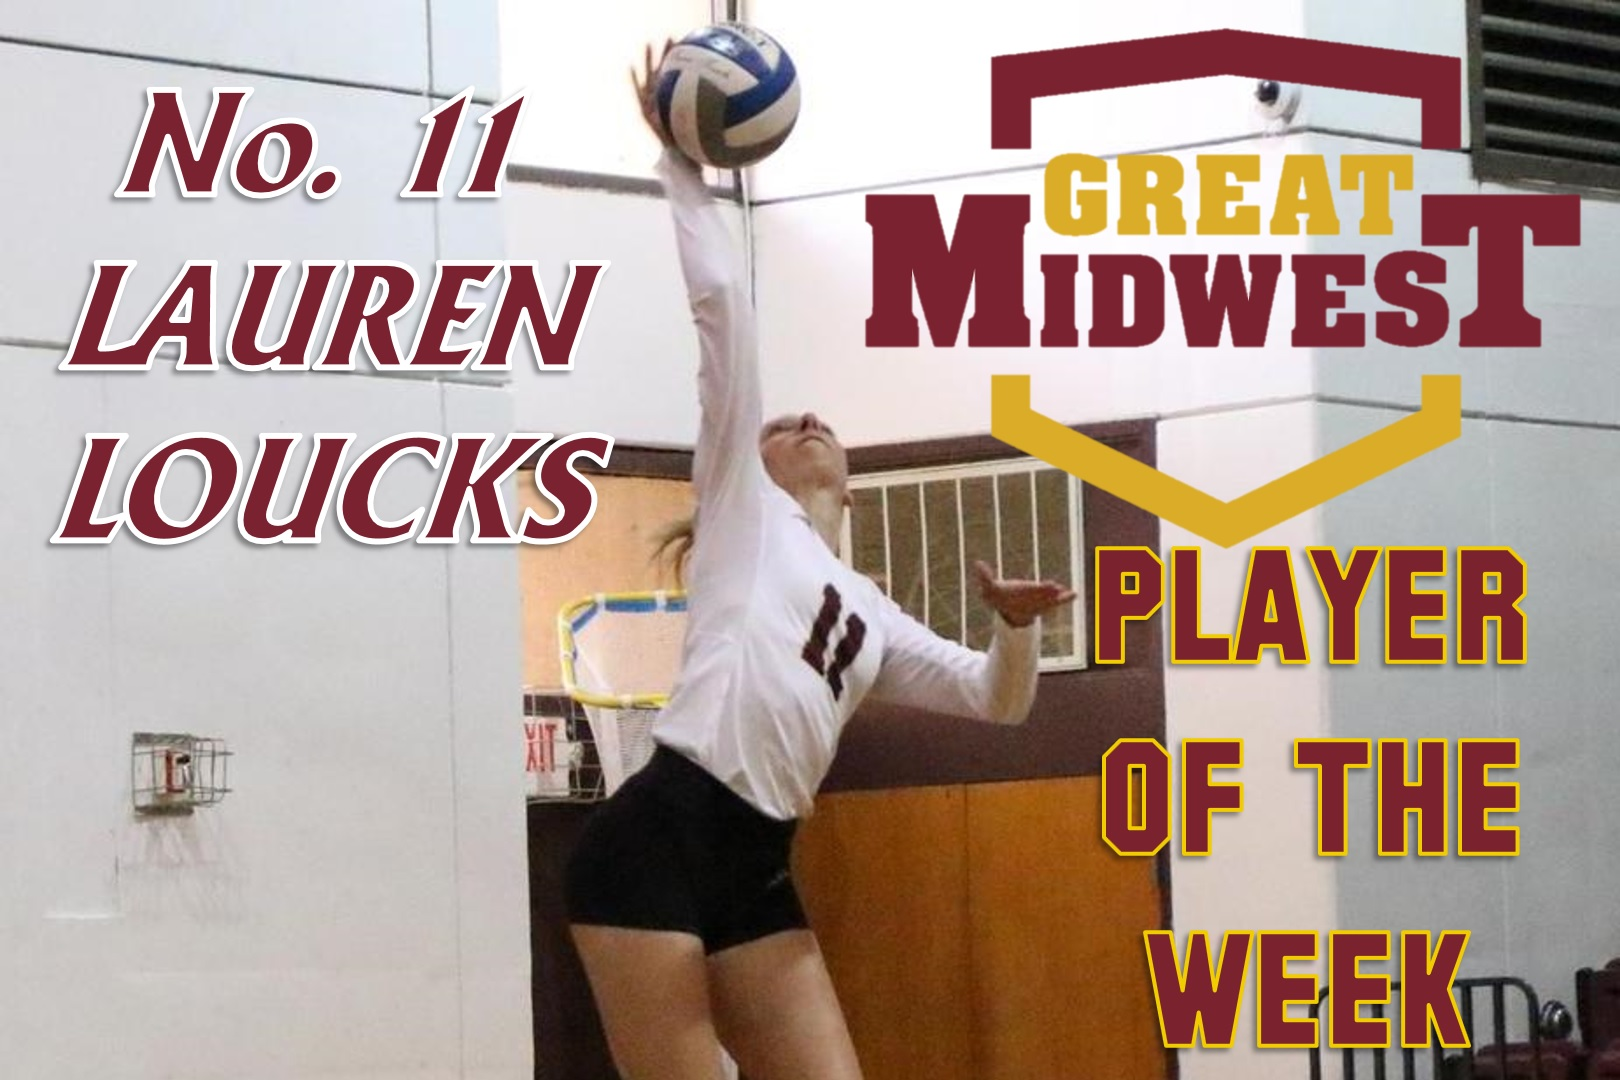 Loucks Earns Player of the Week Honors For Second Time